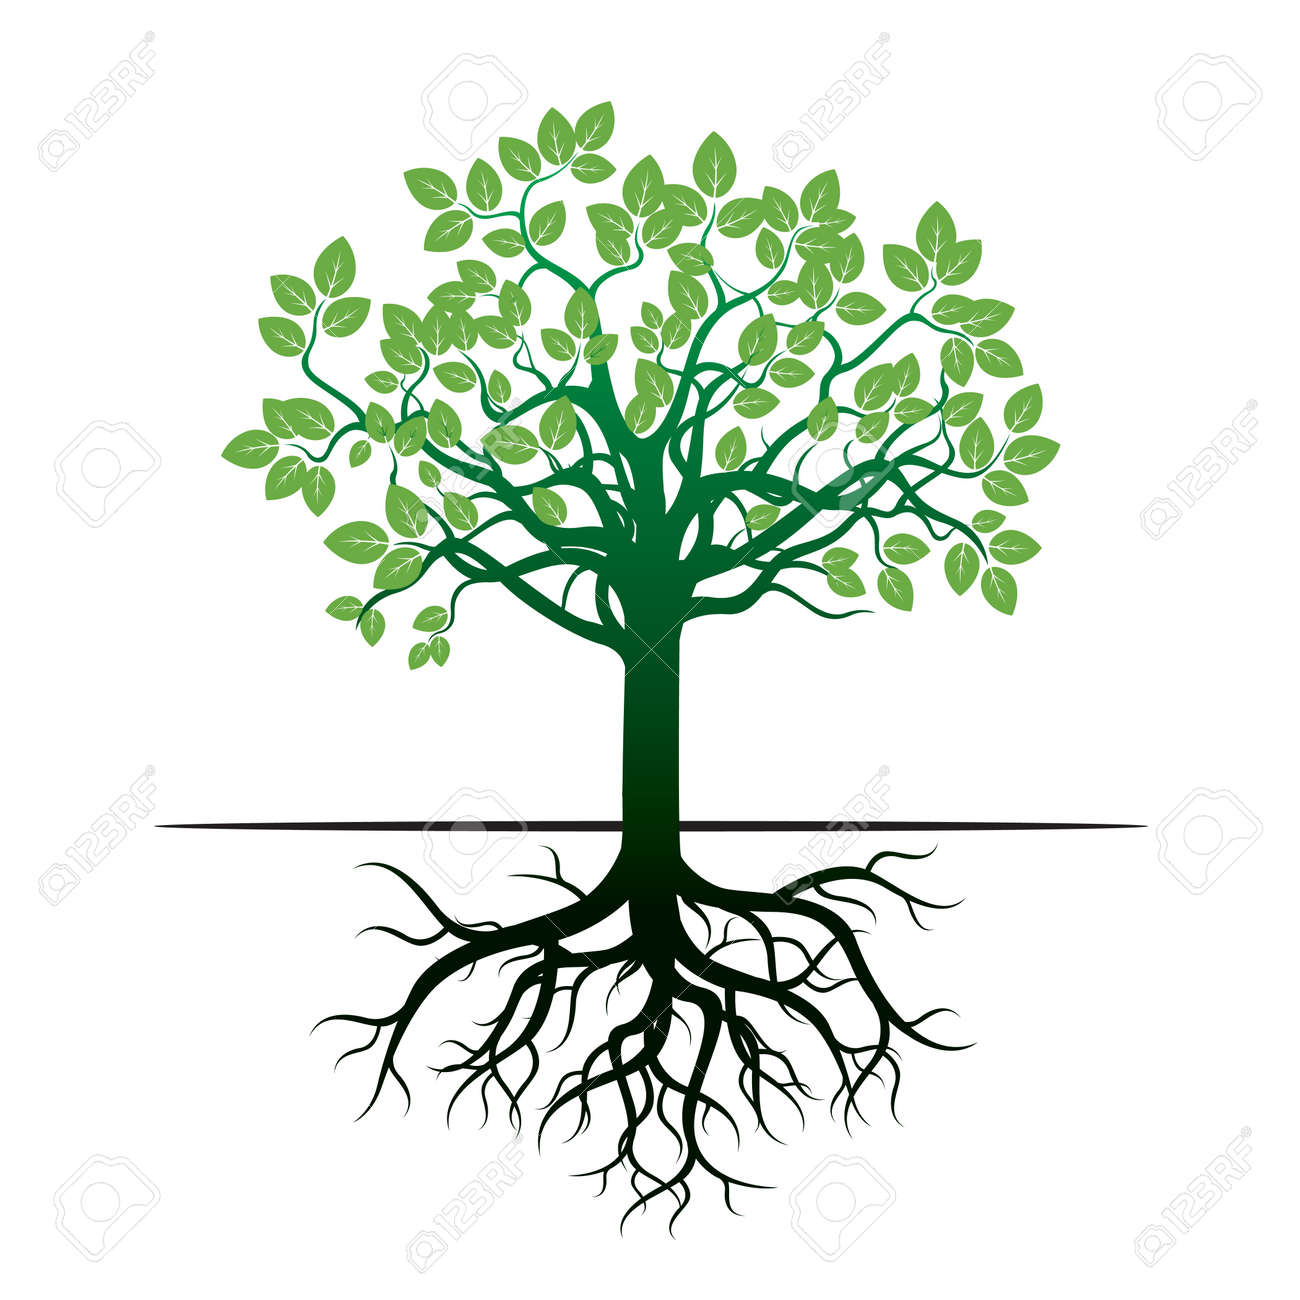 green tree and roots vector icon royalty free cliparts vectors rh 123rf com tree with roots vector logo tree roots vector drawing